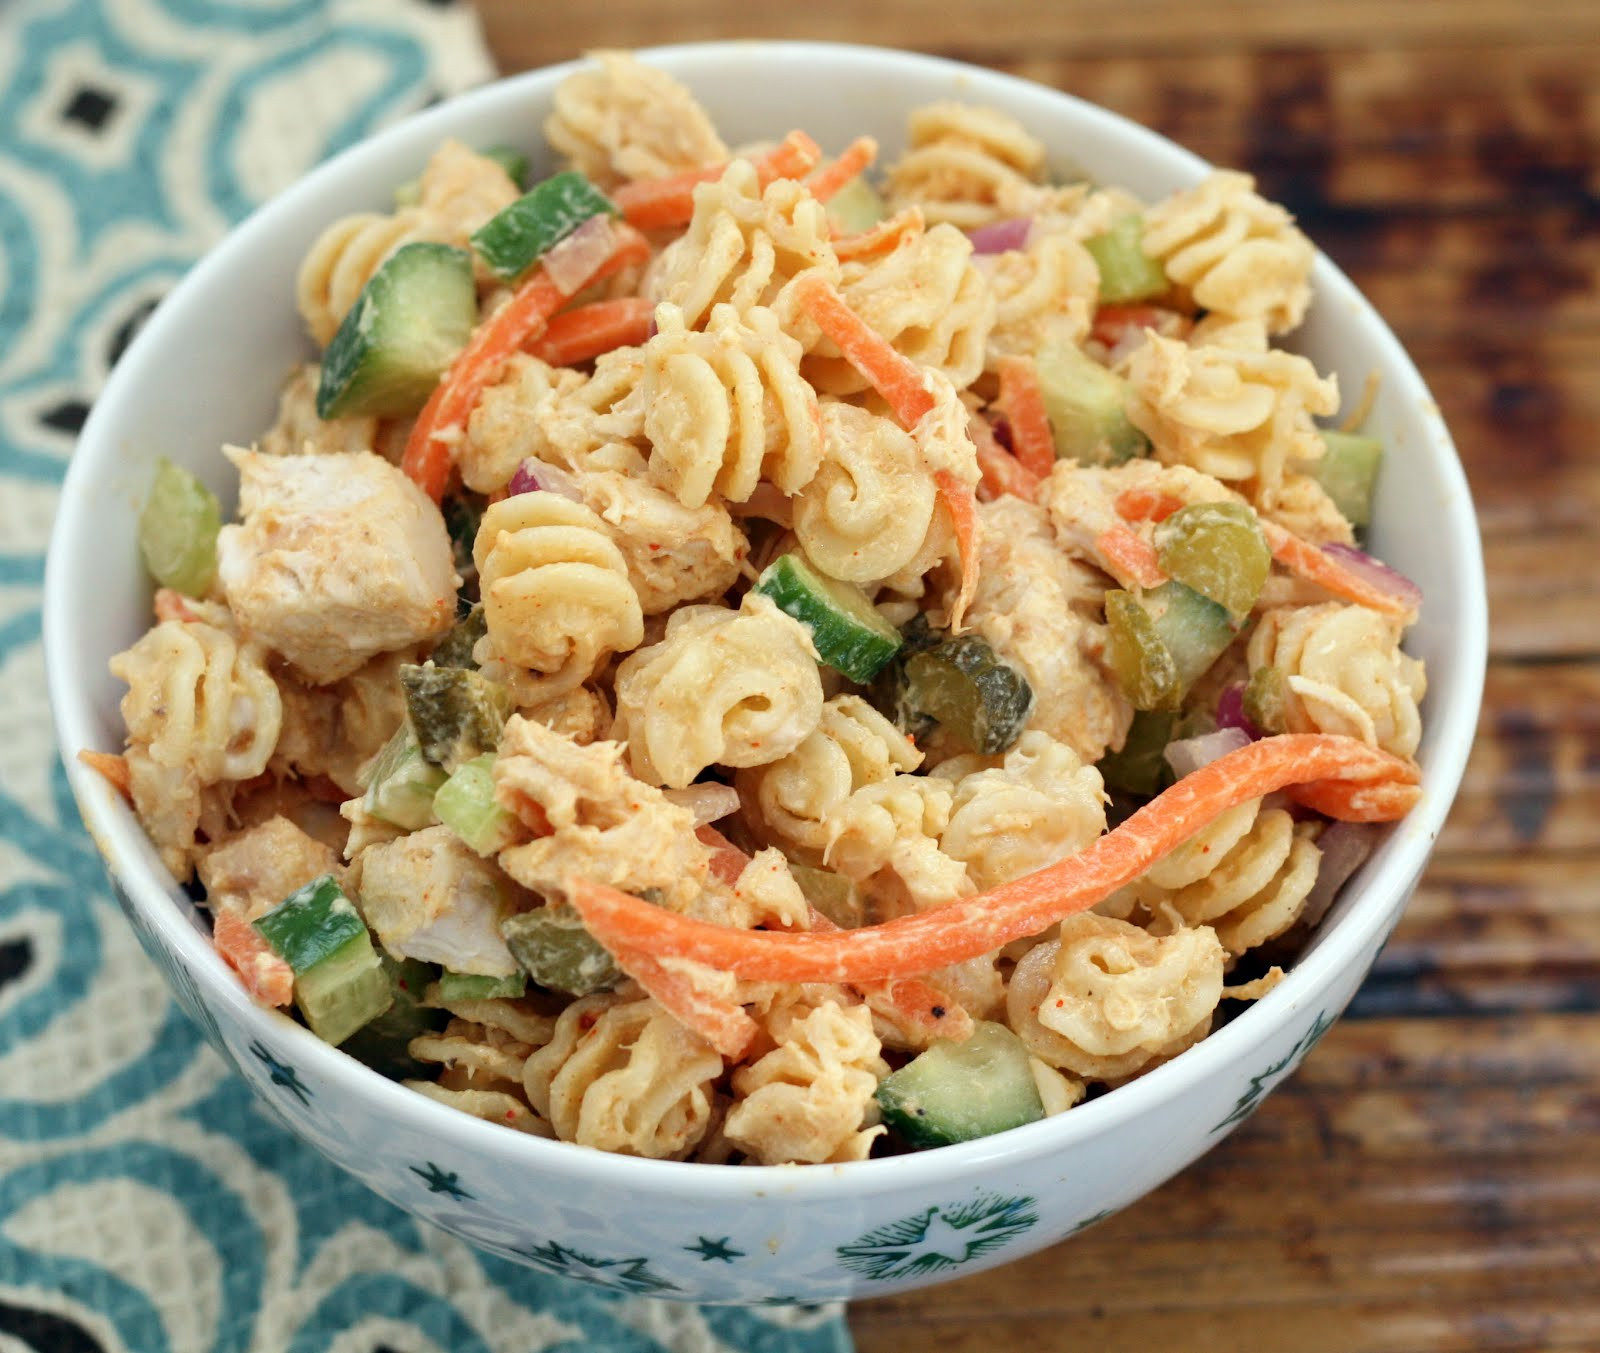 Chicken Pasta Salad With Mayo  Chicken Pasta Salad With Mayo